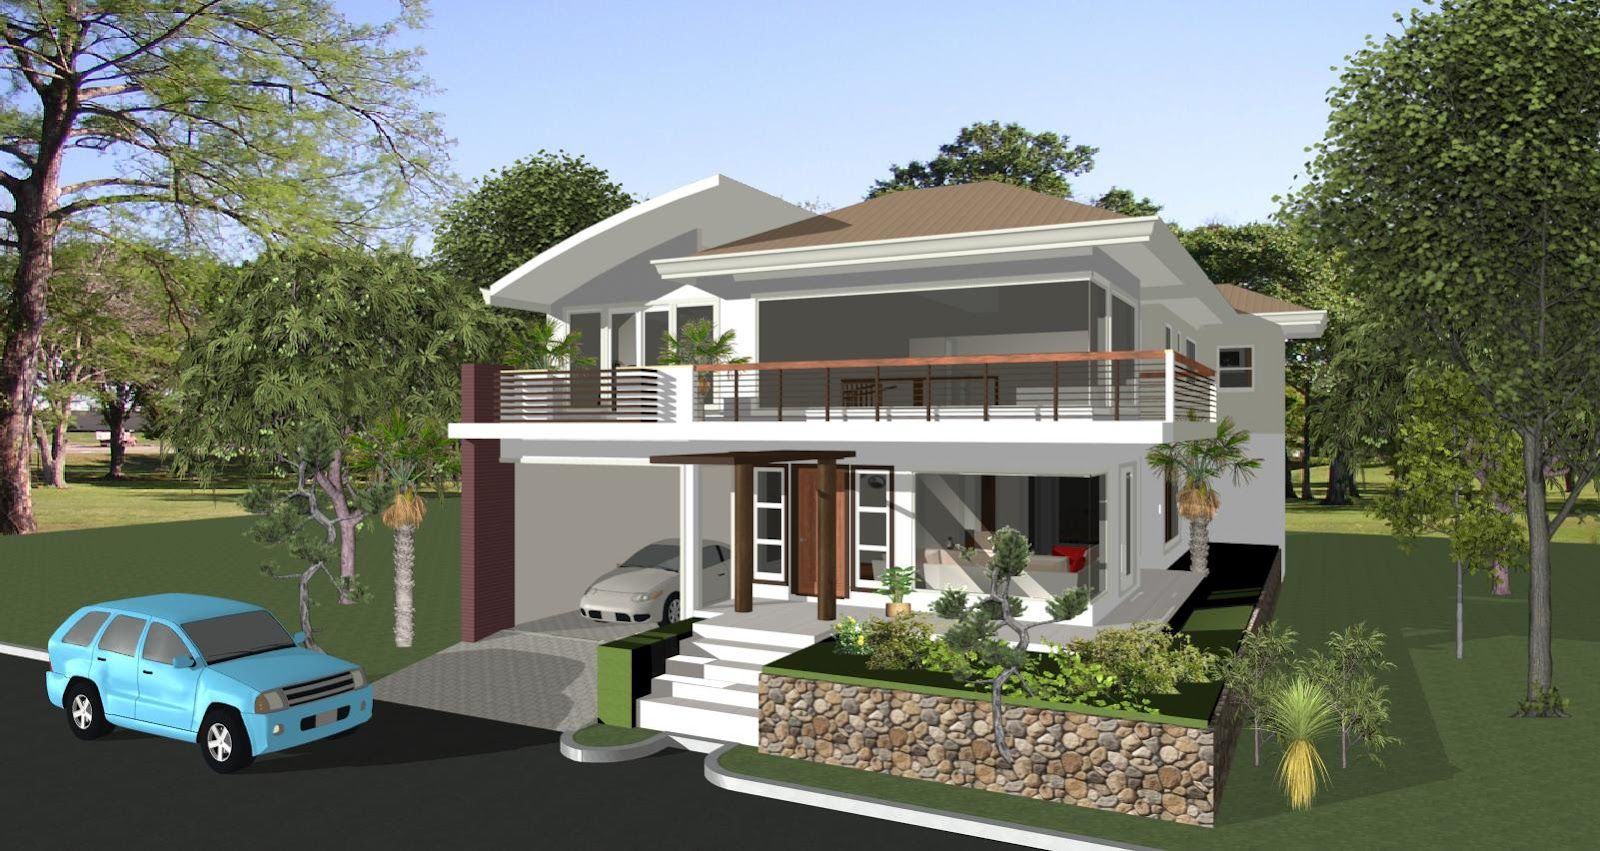 Home Construction And Design Home Design Ideas